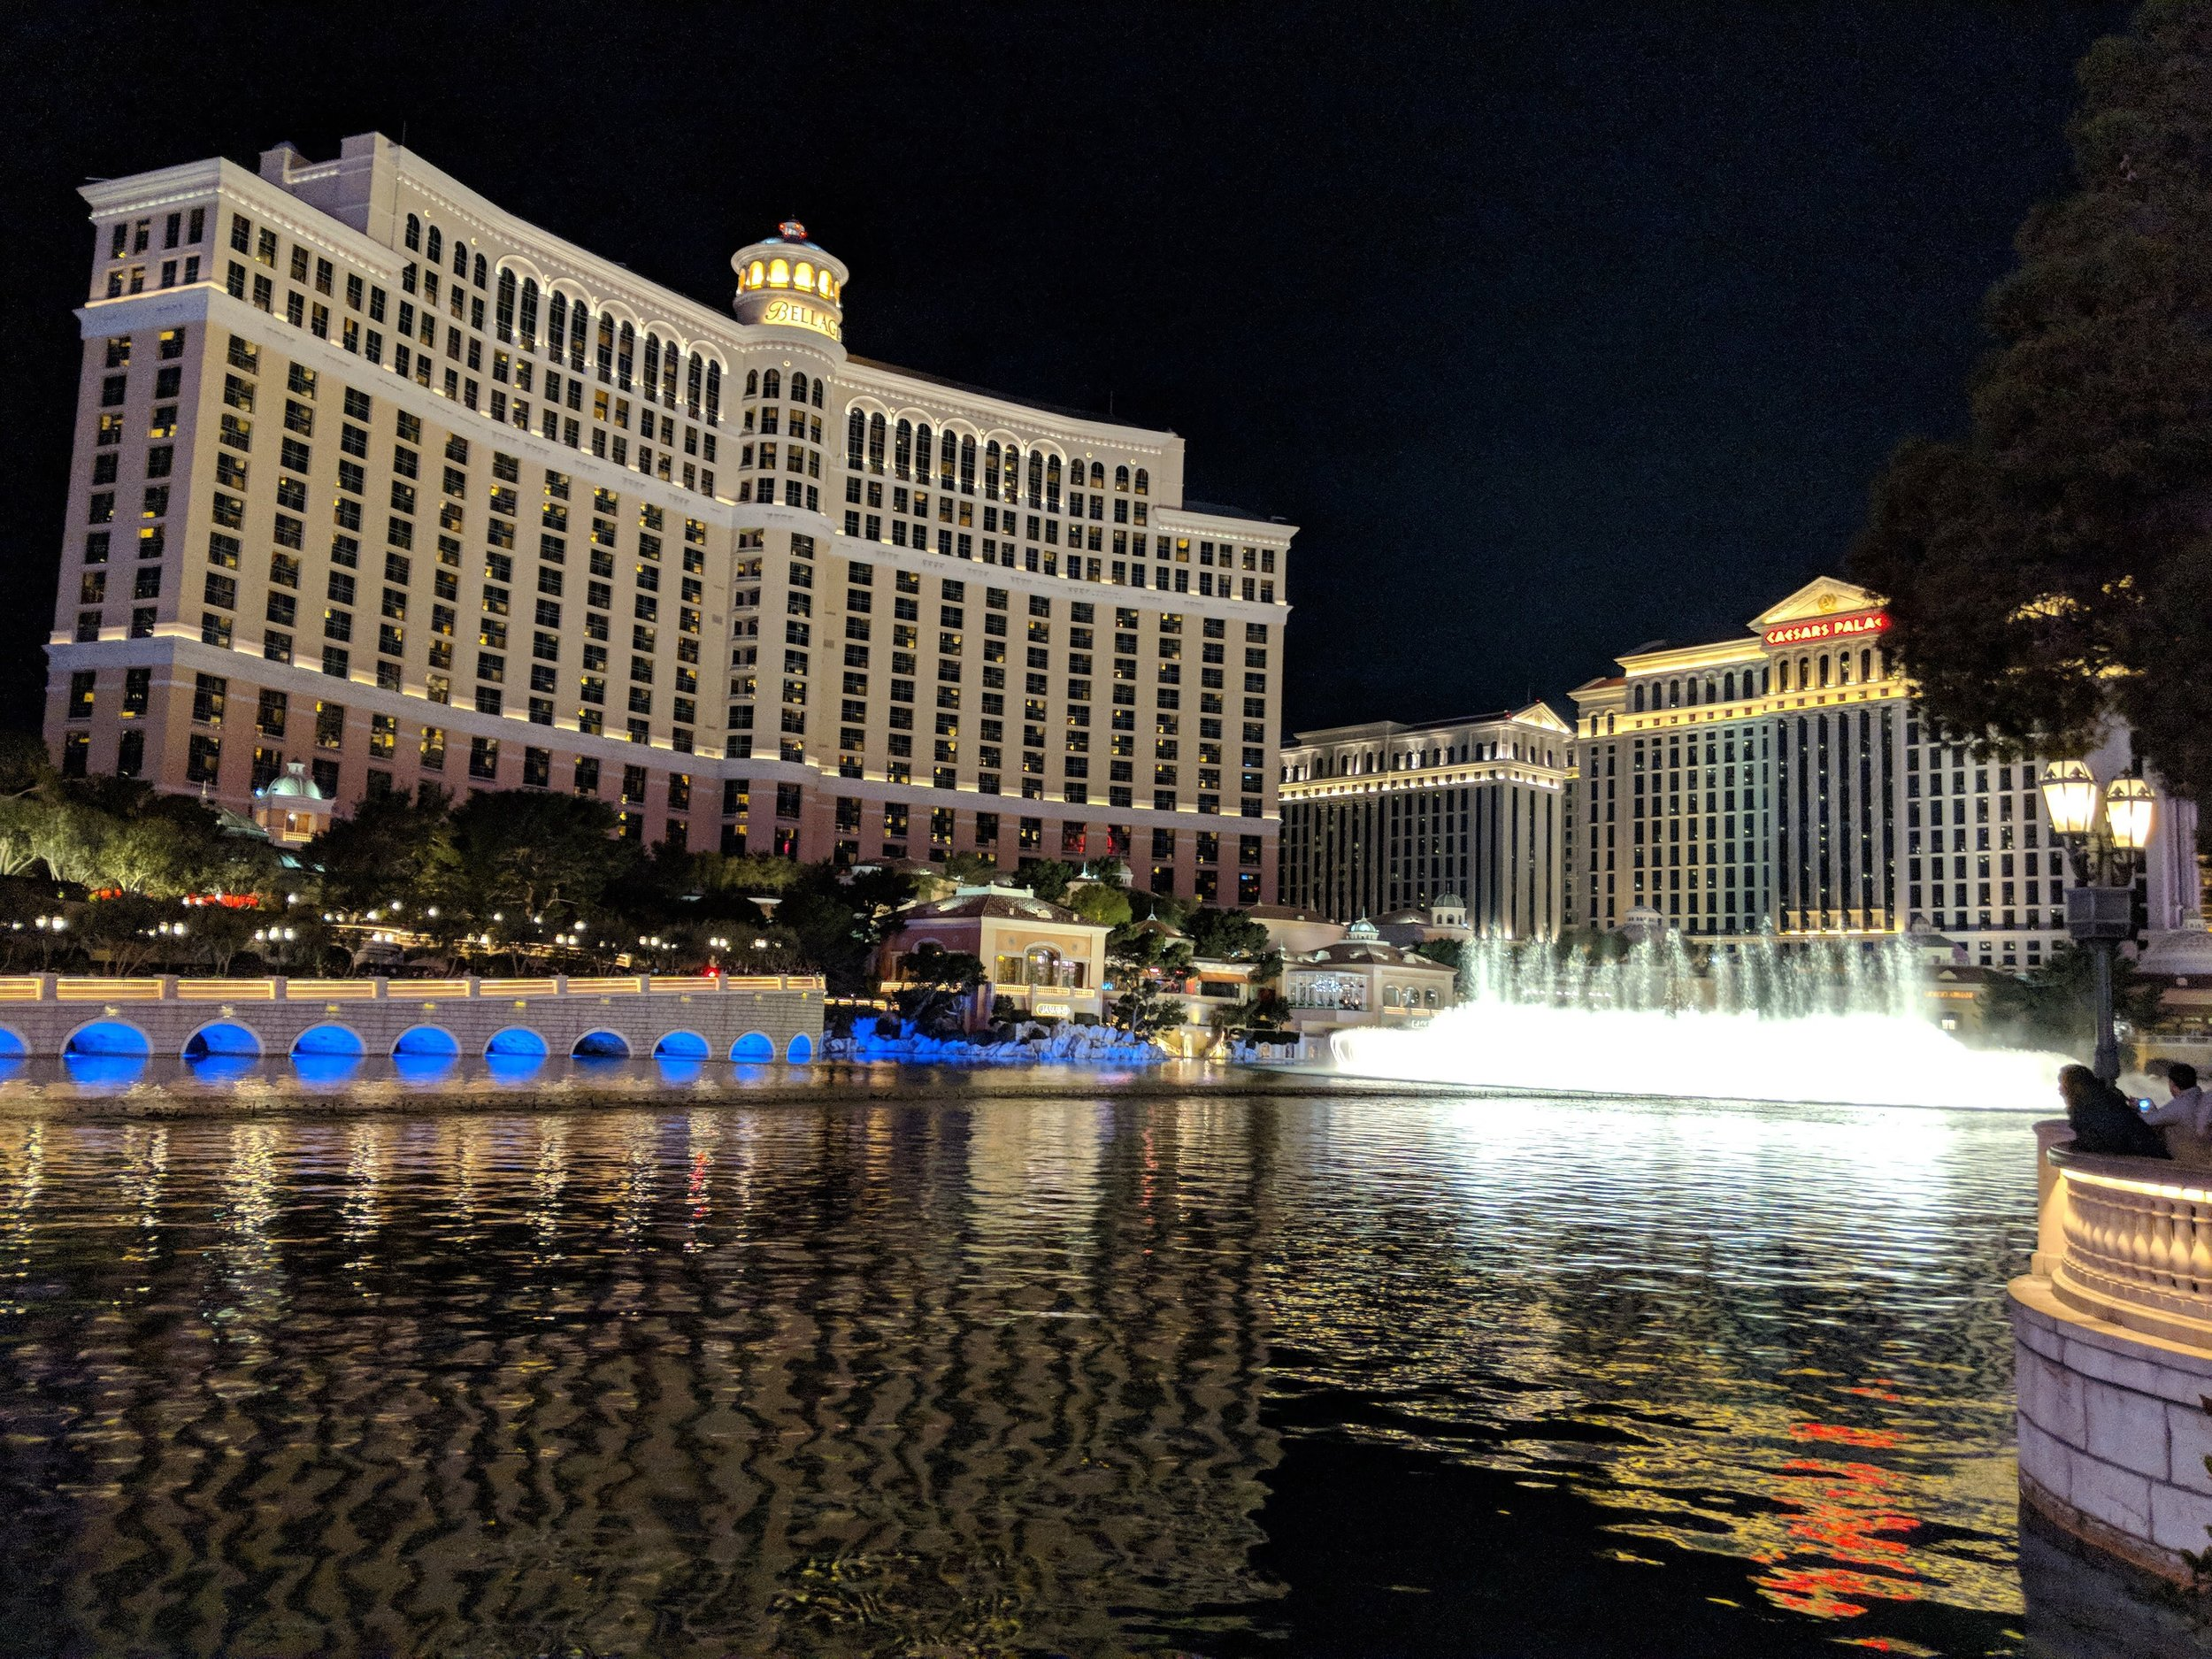 The Bellagio and its famous fountain display. Choreographed to music, no less!